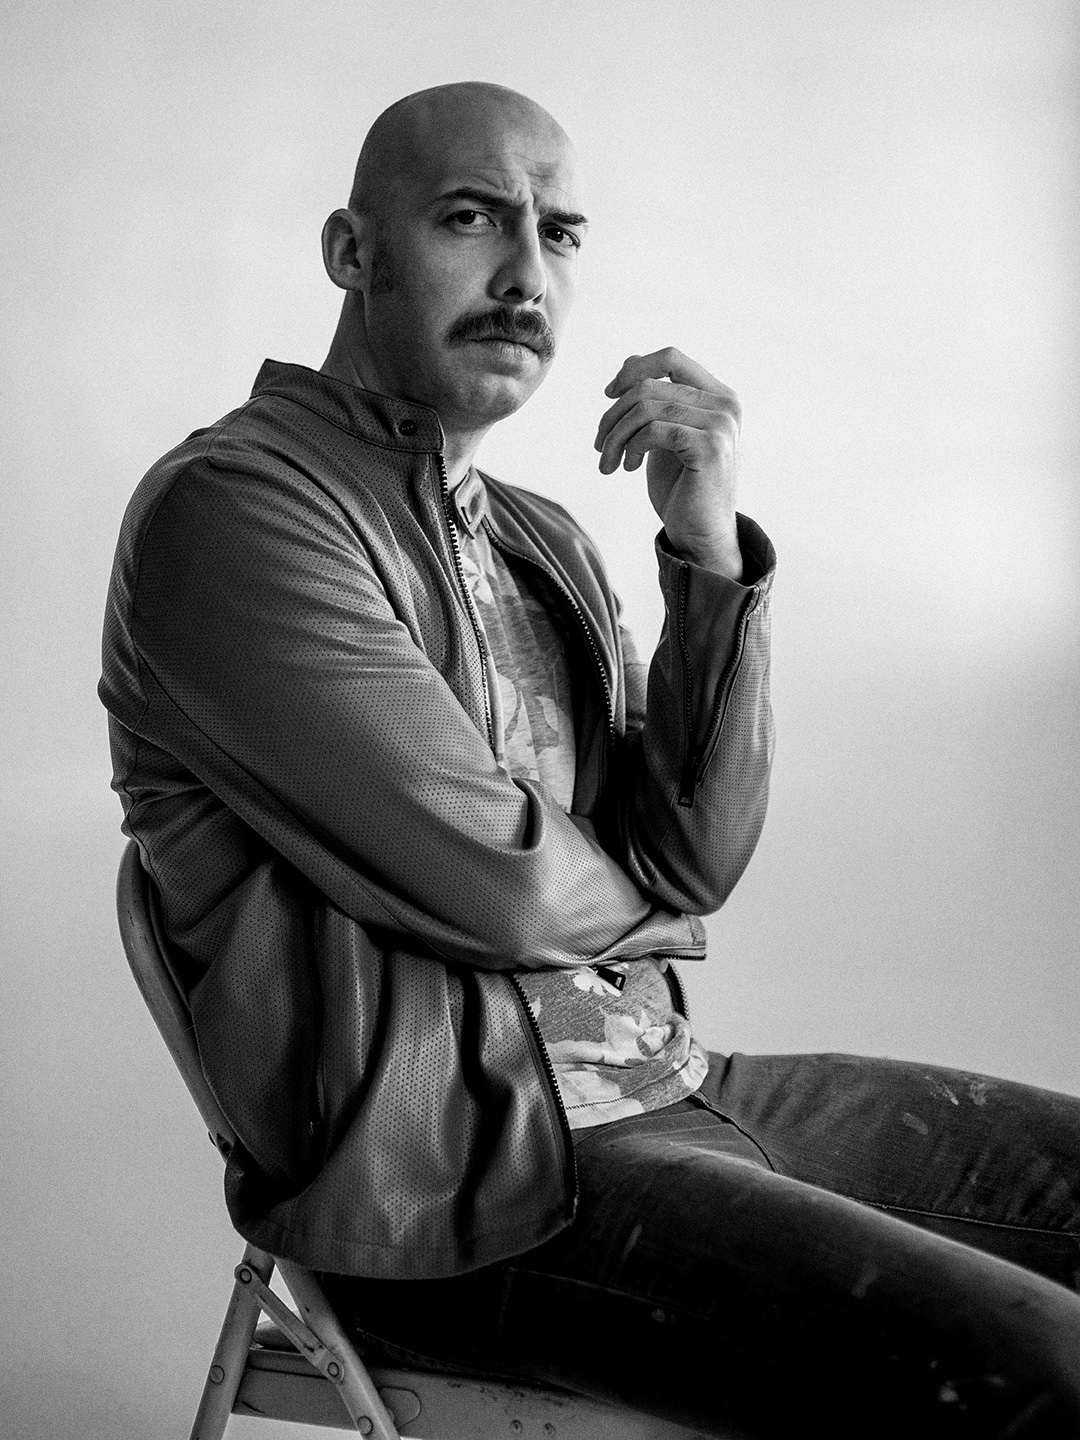 Jose Balli photographed at Eleven Hundred Collective Studio in San Antonio, Texas, by editorial and celebrity photographer Josh Huskin.